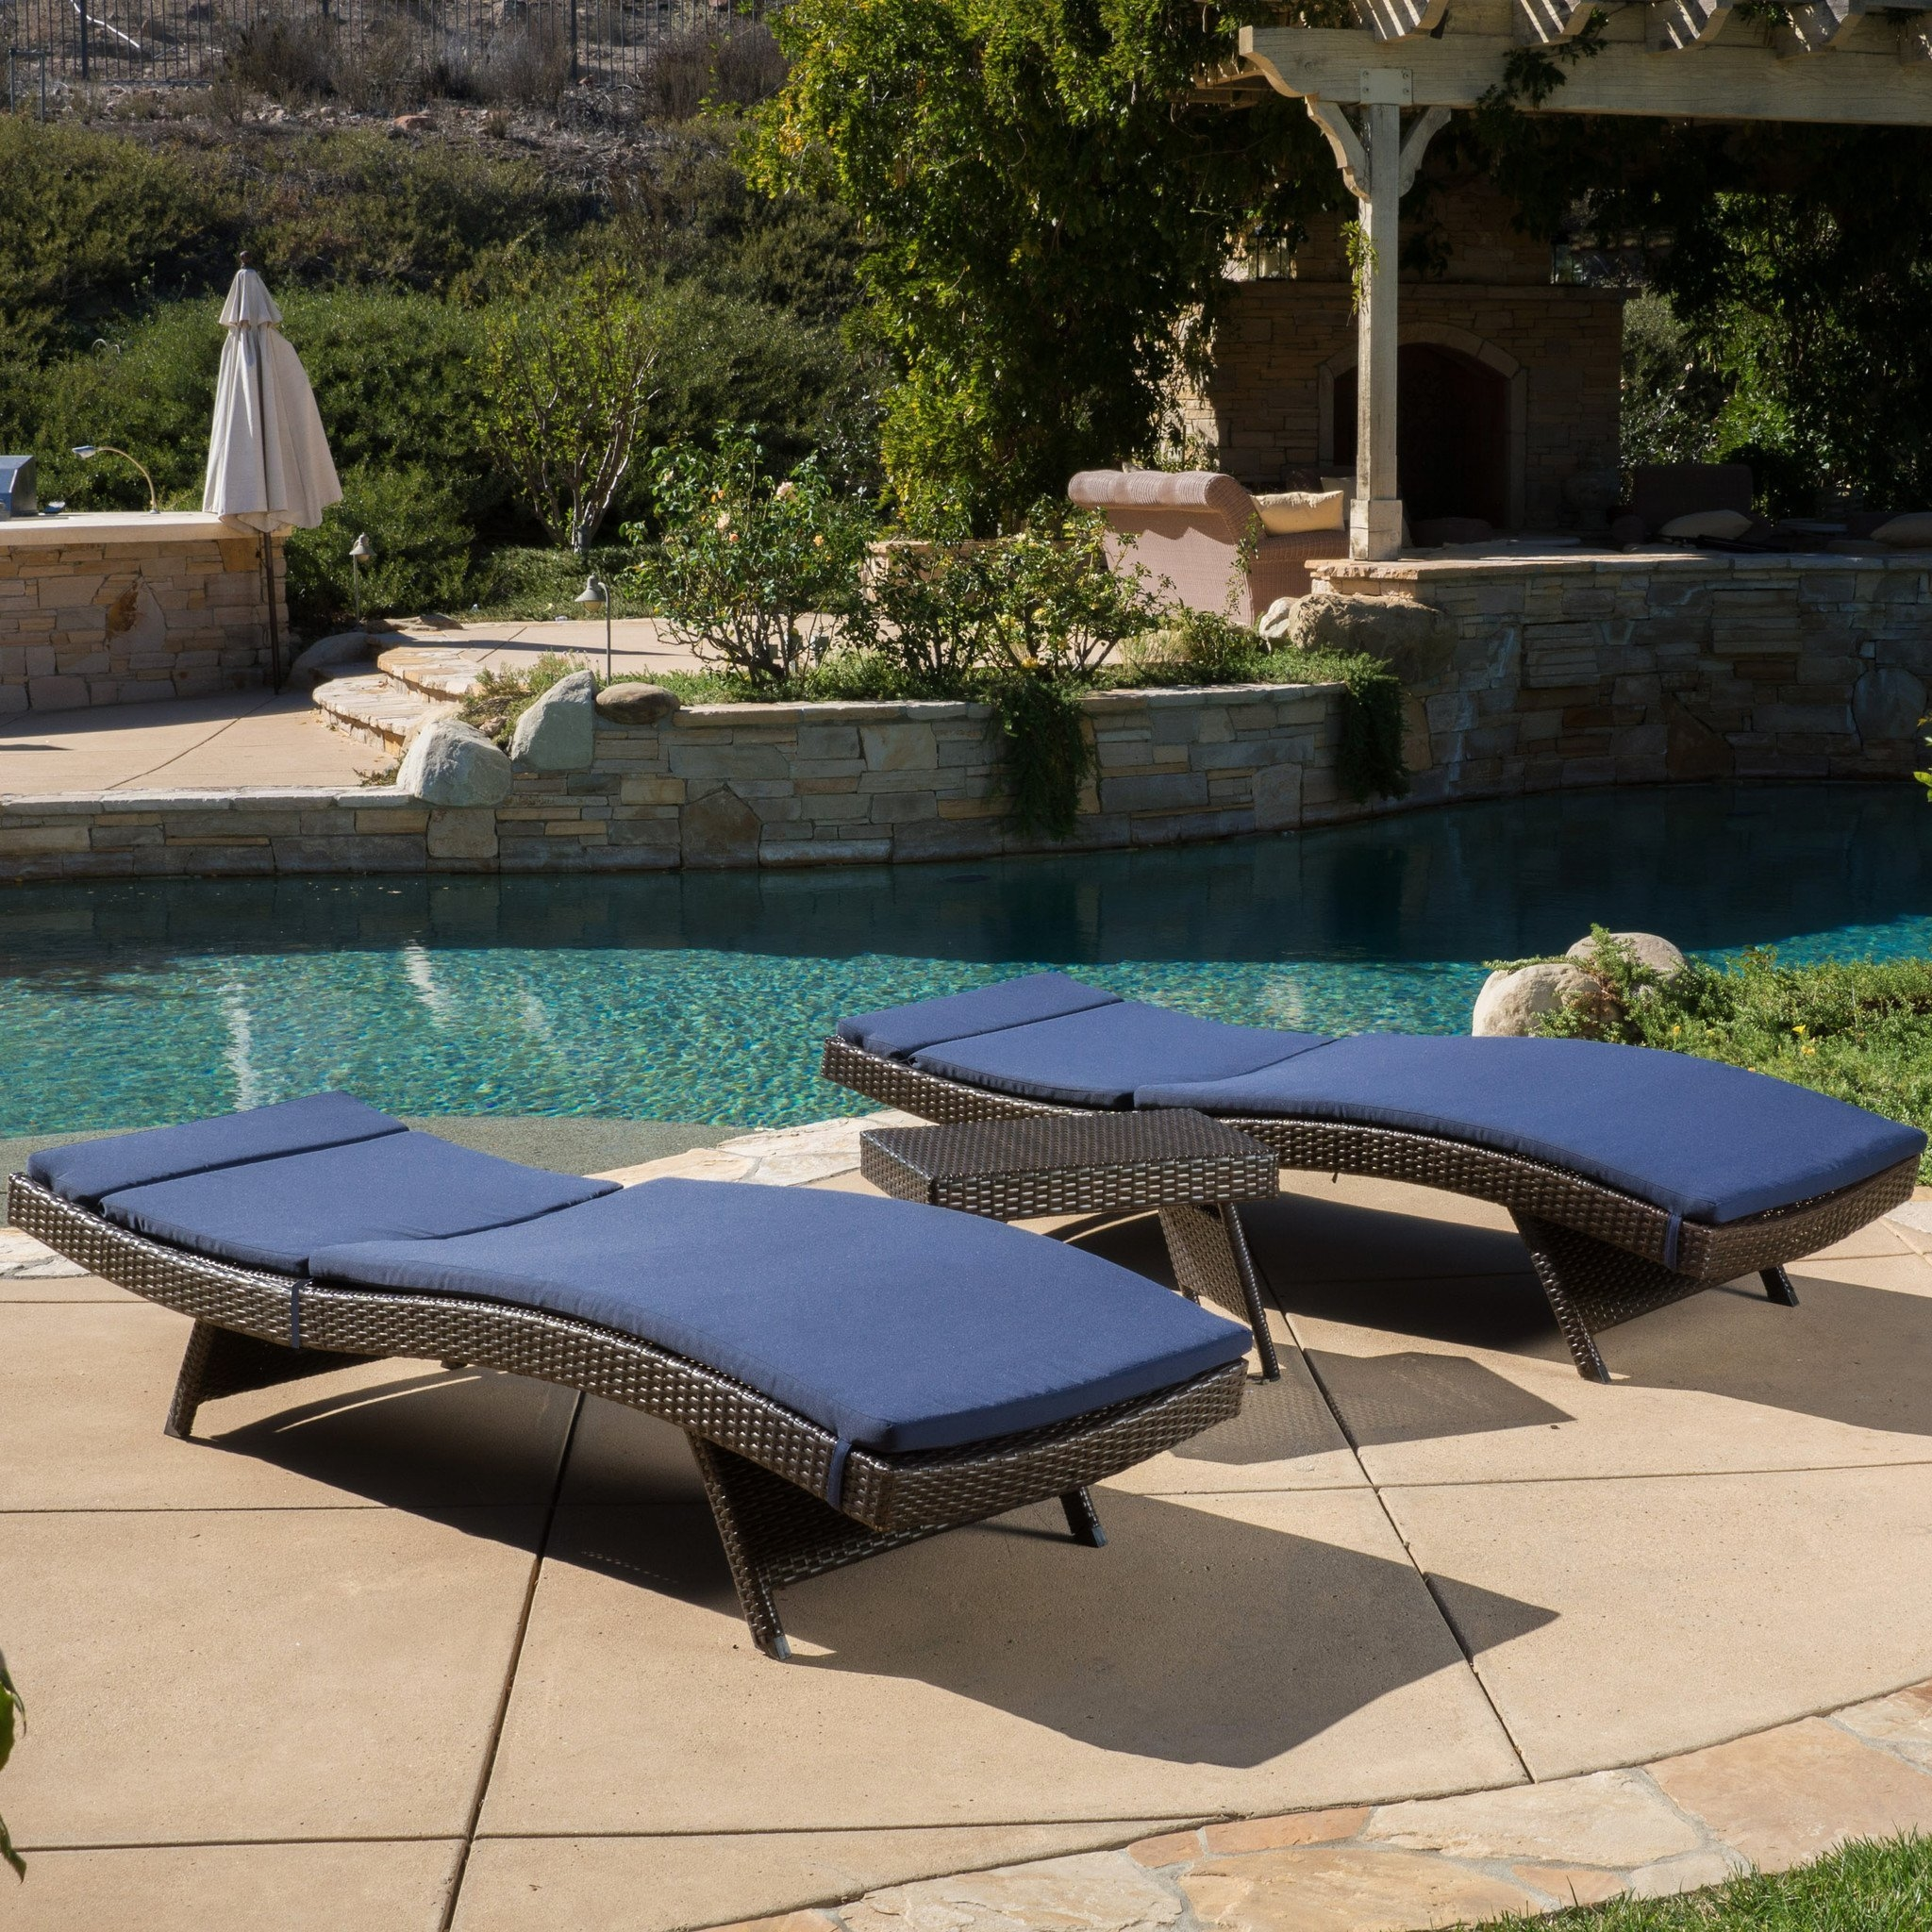 Lakeport Outdoor 3-piece Wicker Adjustable Chaise Lounge Set with Cushions